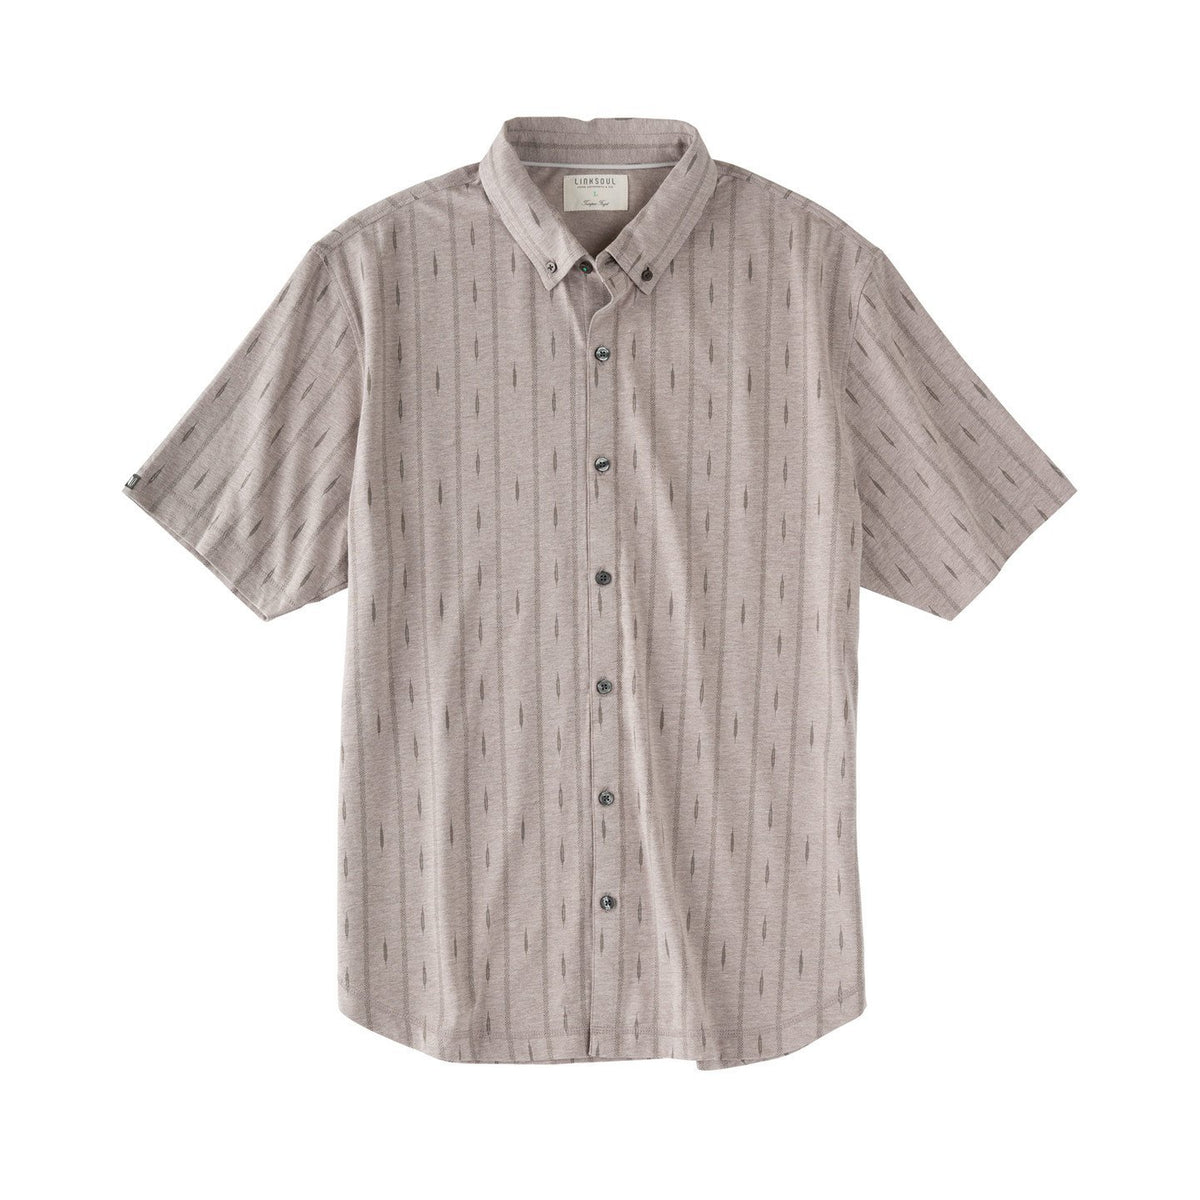 Full Button Printed Short Sleeve Shirt